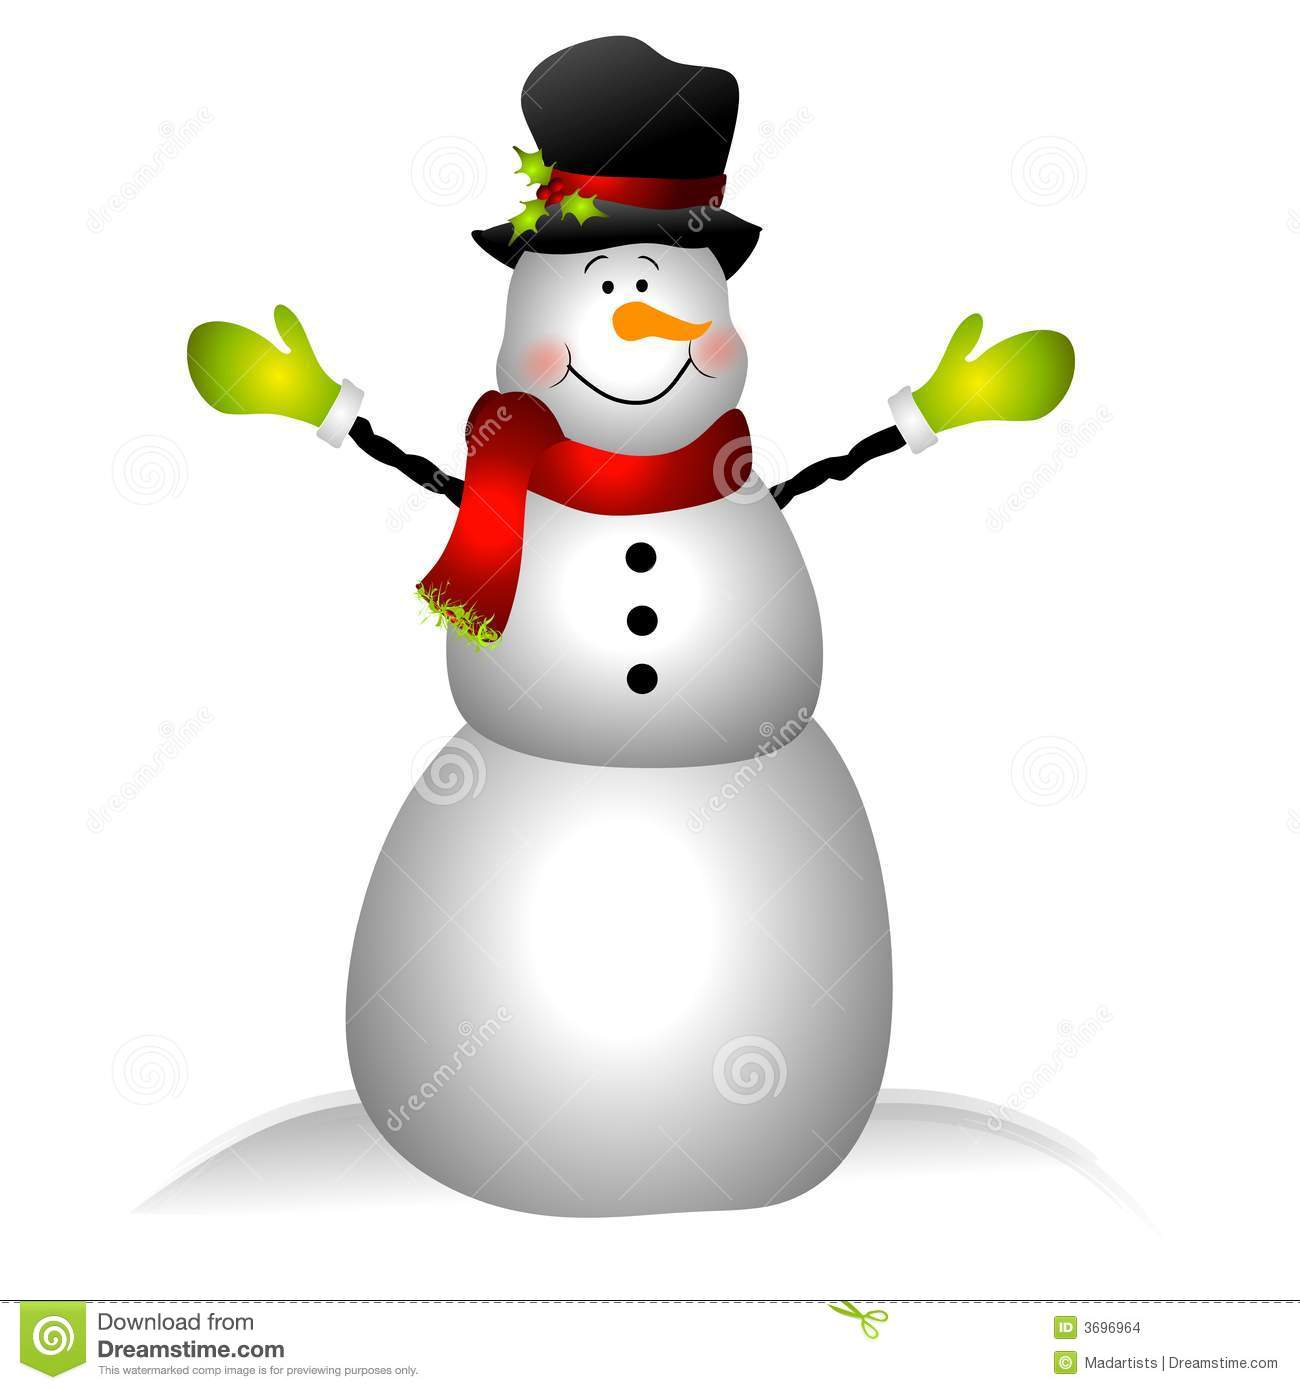 clip art illustration featuring a snowman dressed in hat, scarf ...